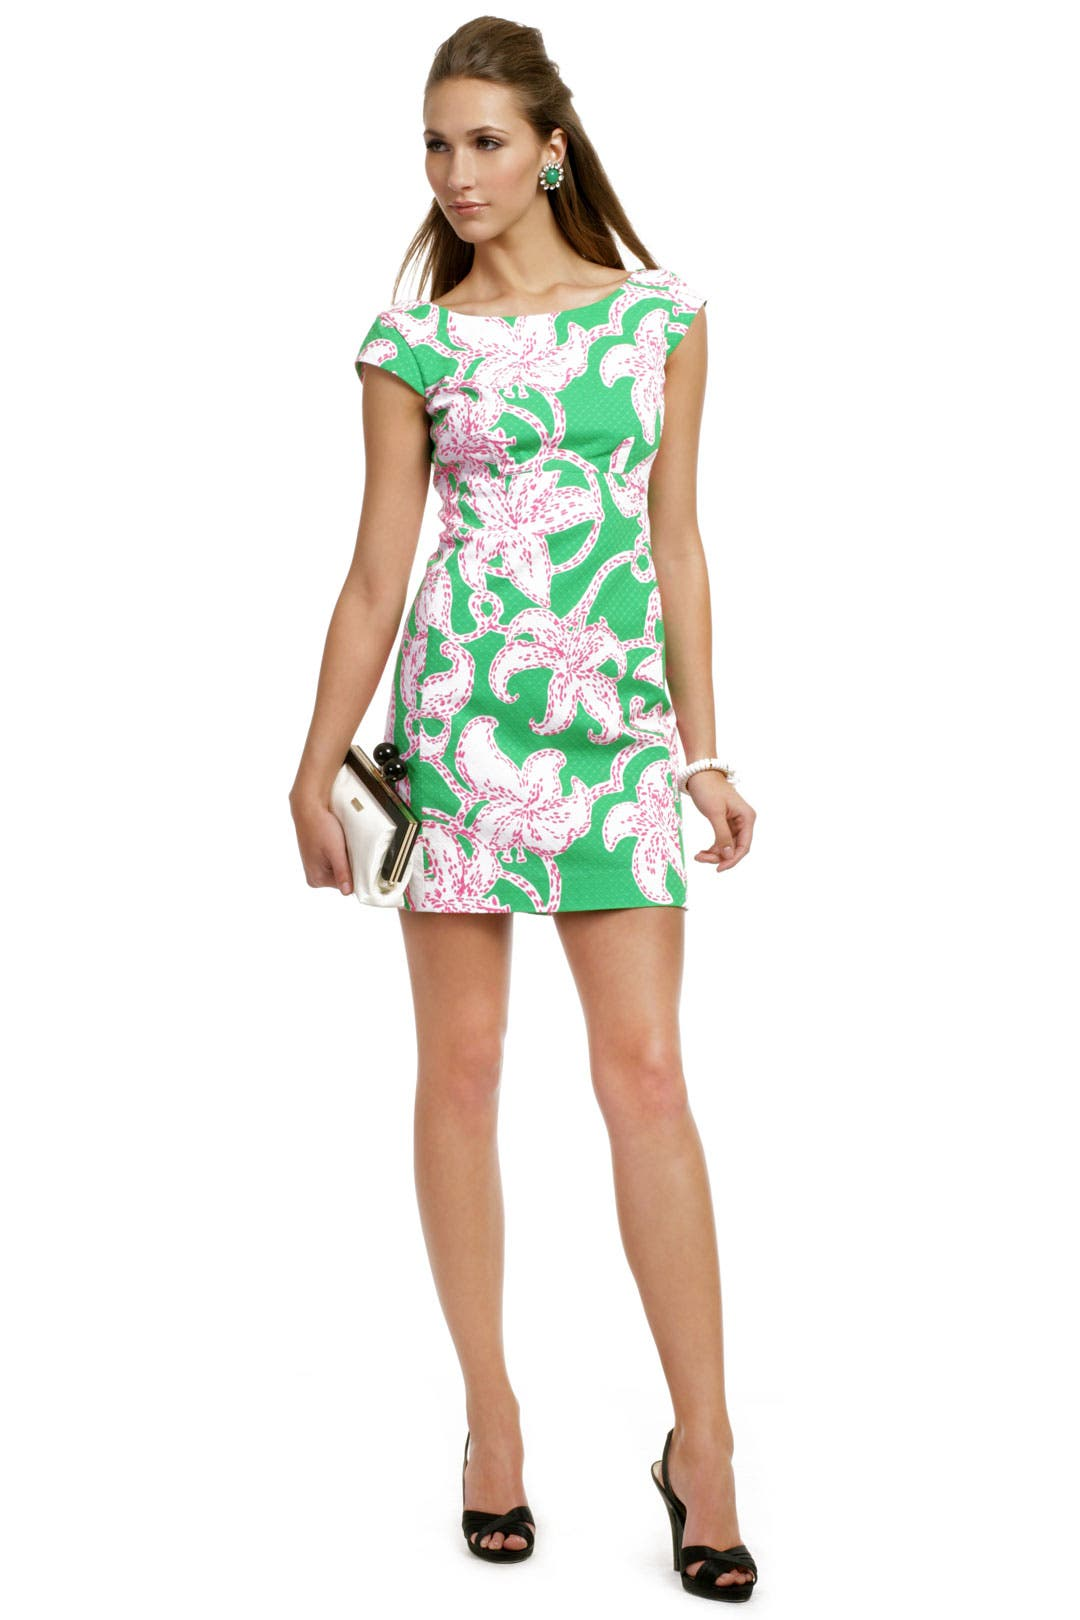 Lilly Pulitzer Dresses Cheap Online Sale